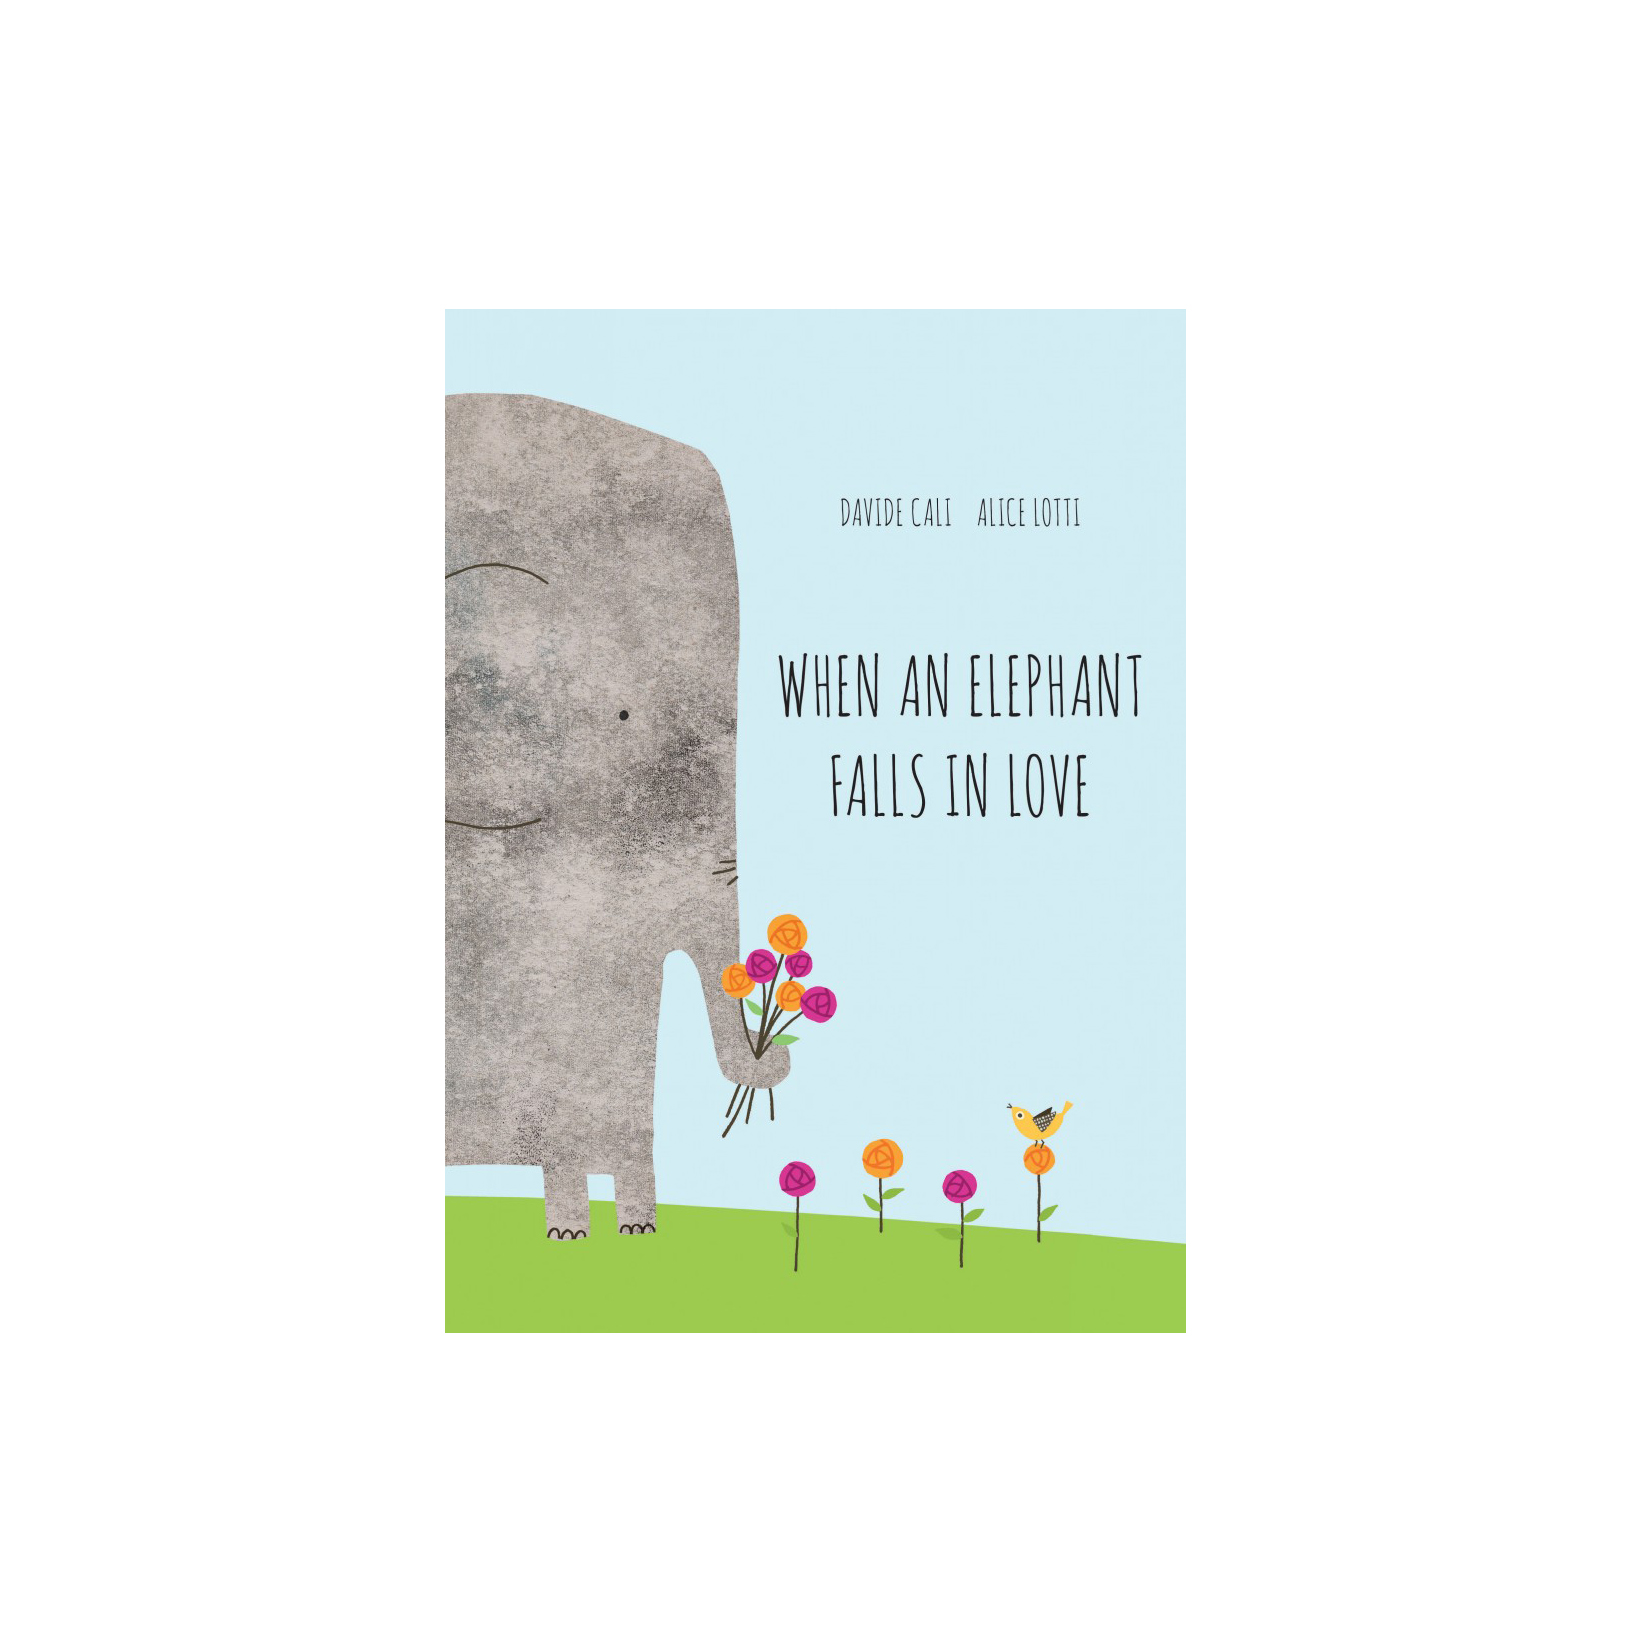 Valentine's Day Gifts for Kids: When an Elephant Falls in Love